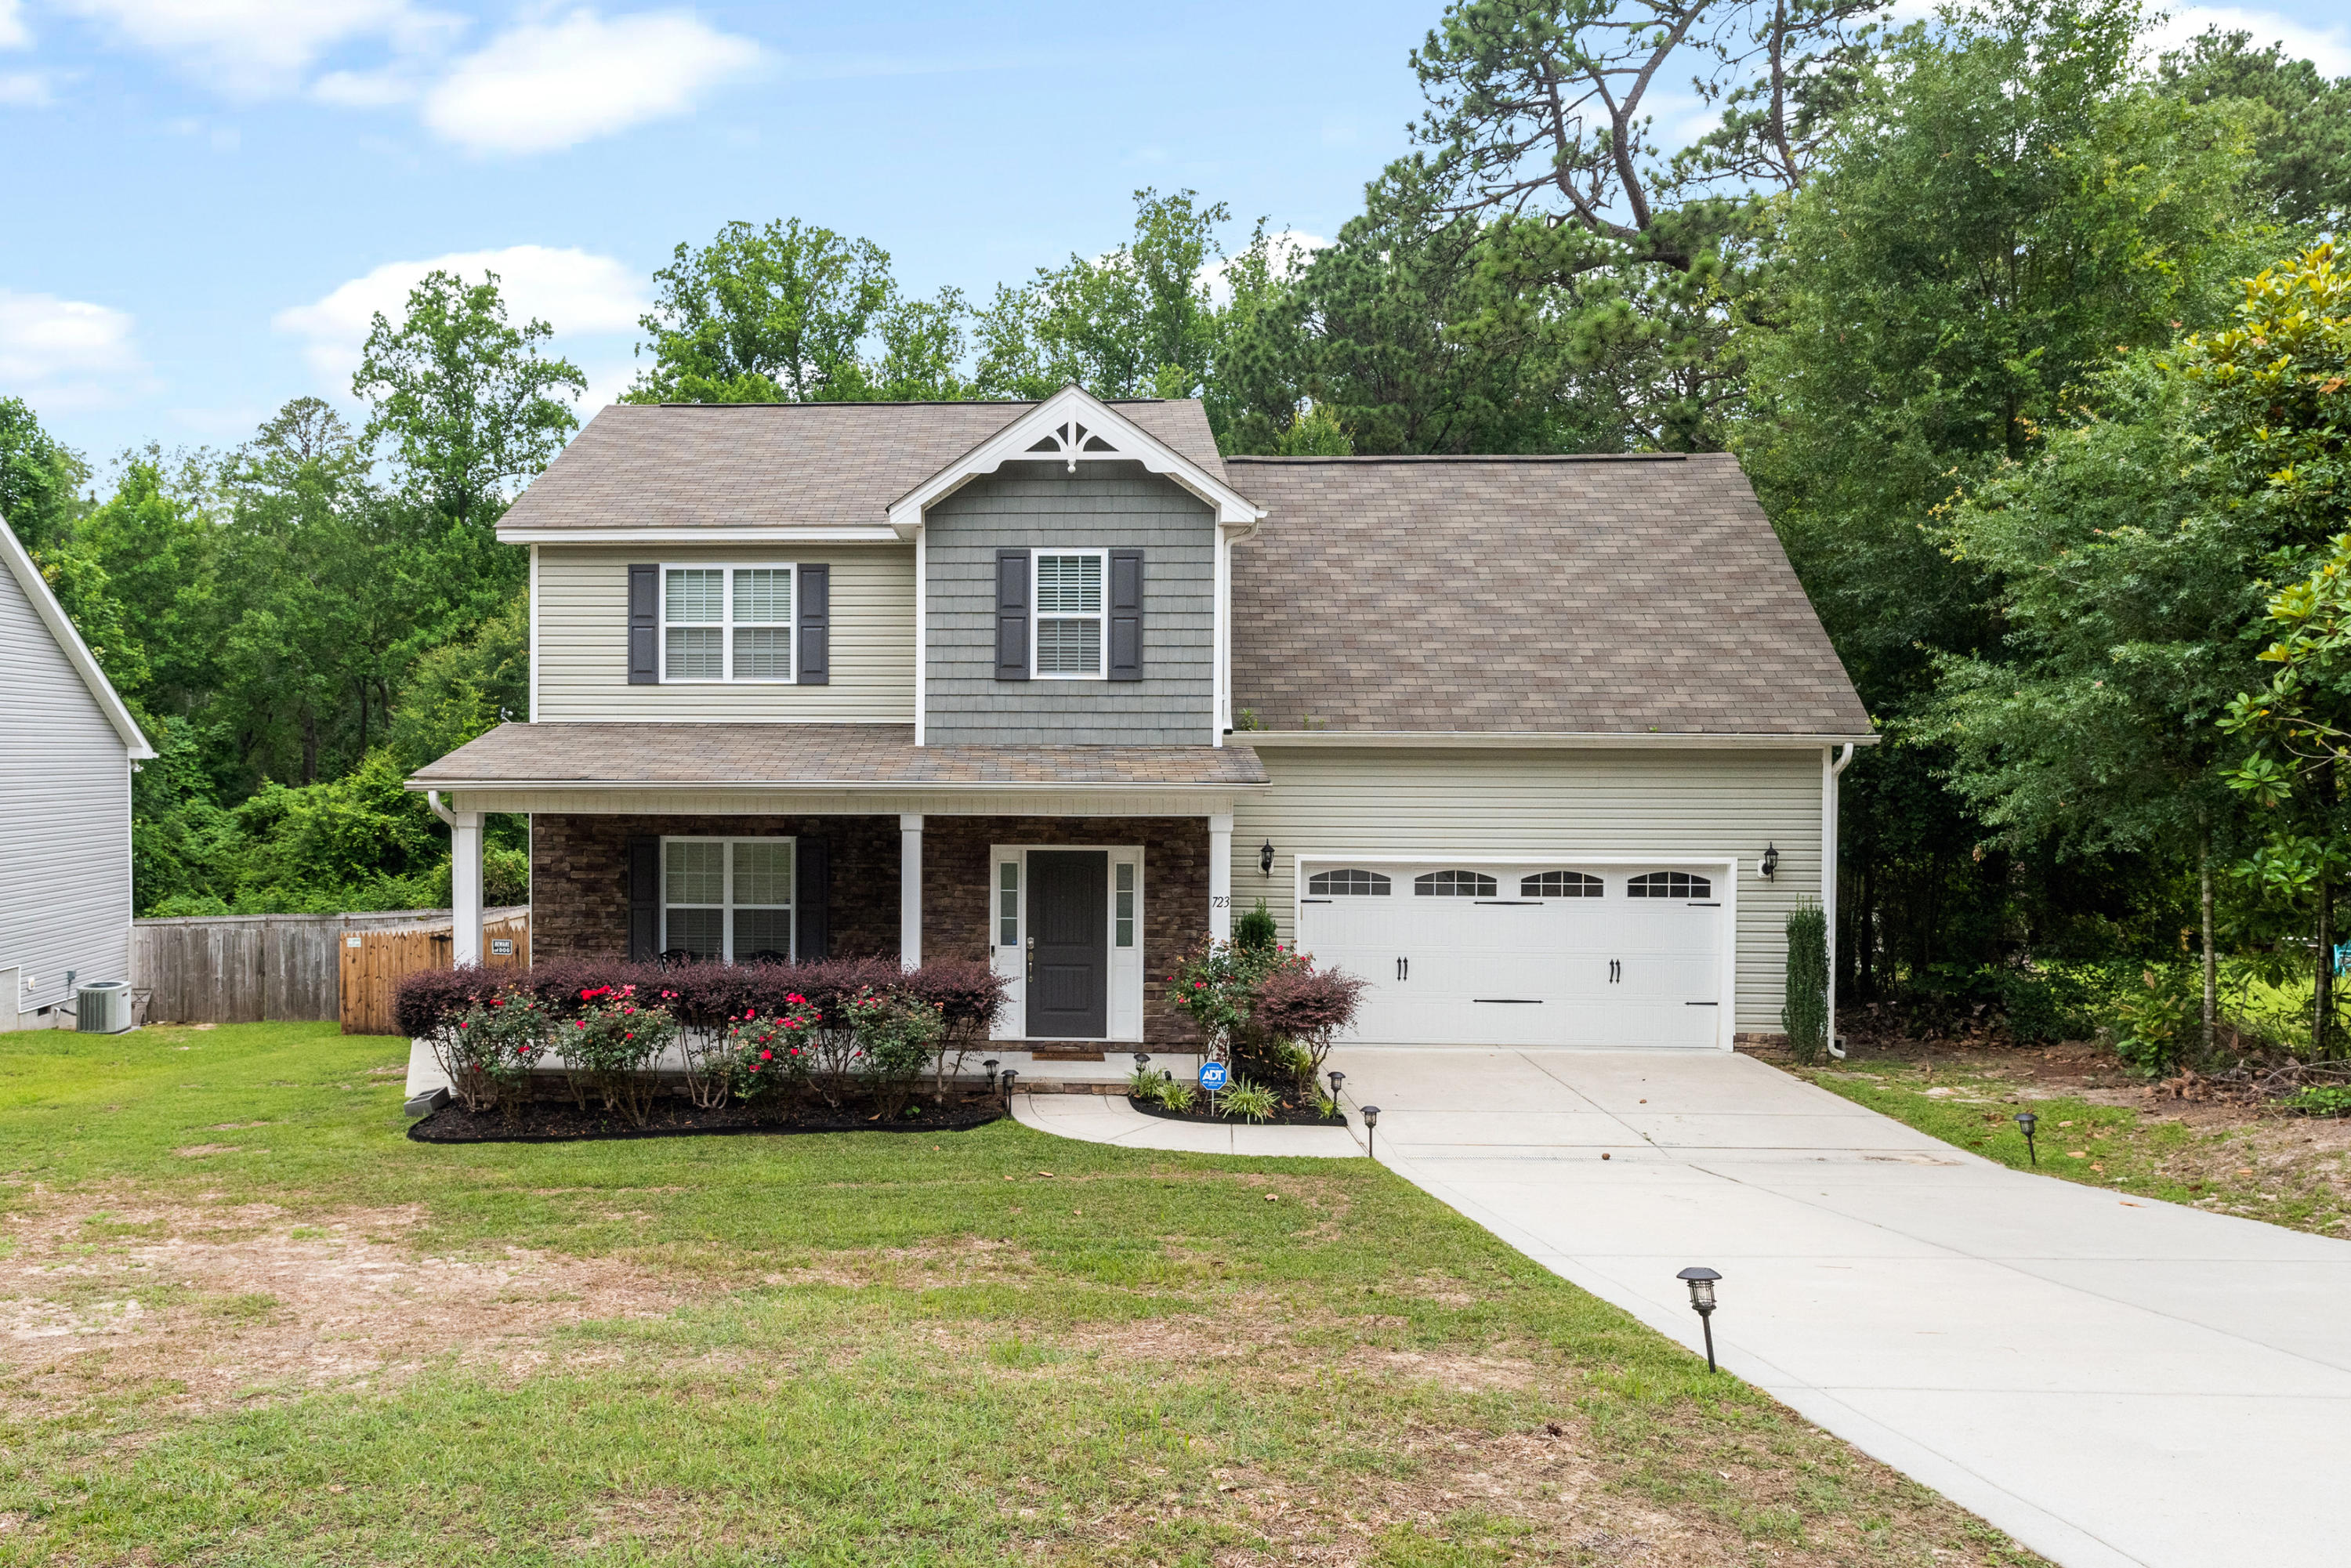 723 N Chapin Road, Aberdeen, North Carolina